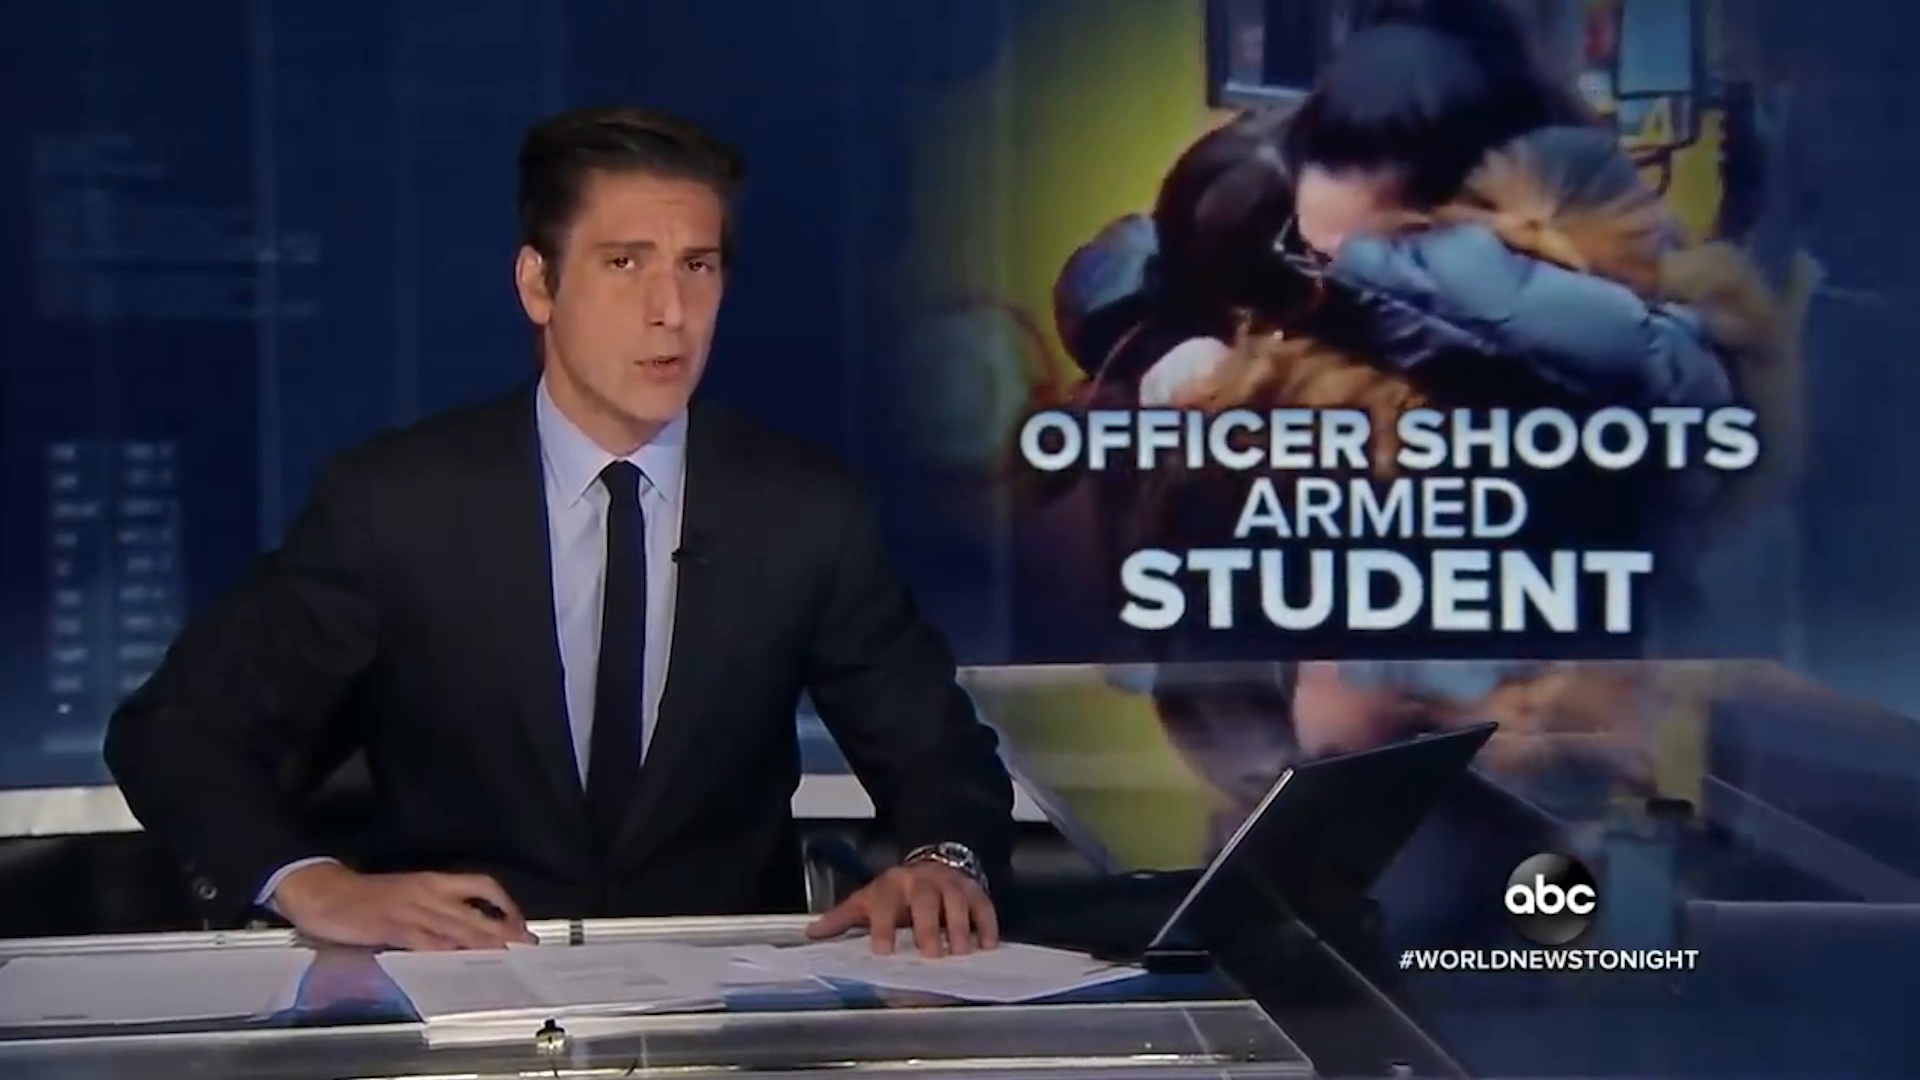 Two Fake Shootings With One Stone